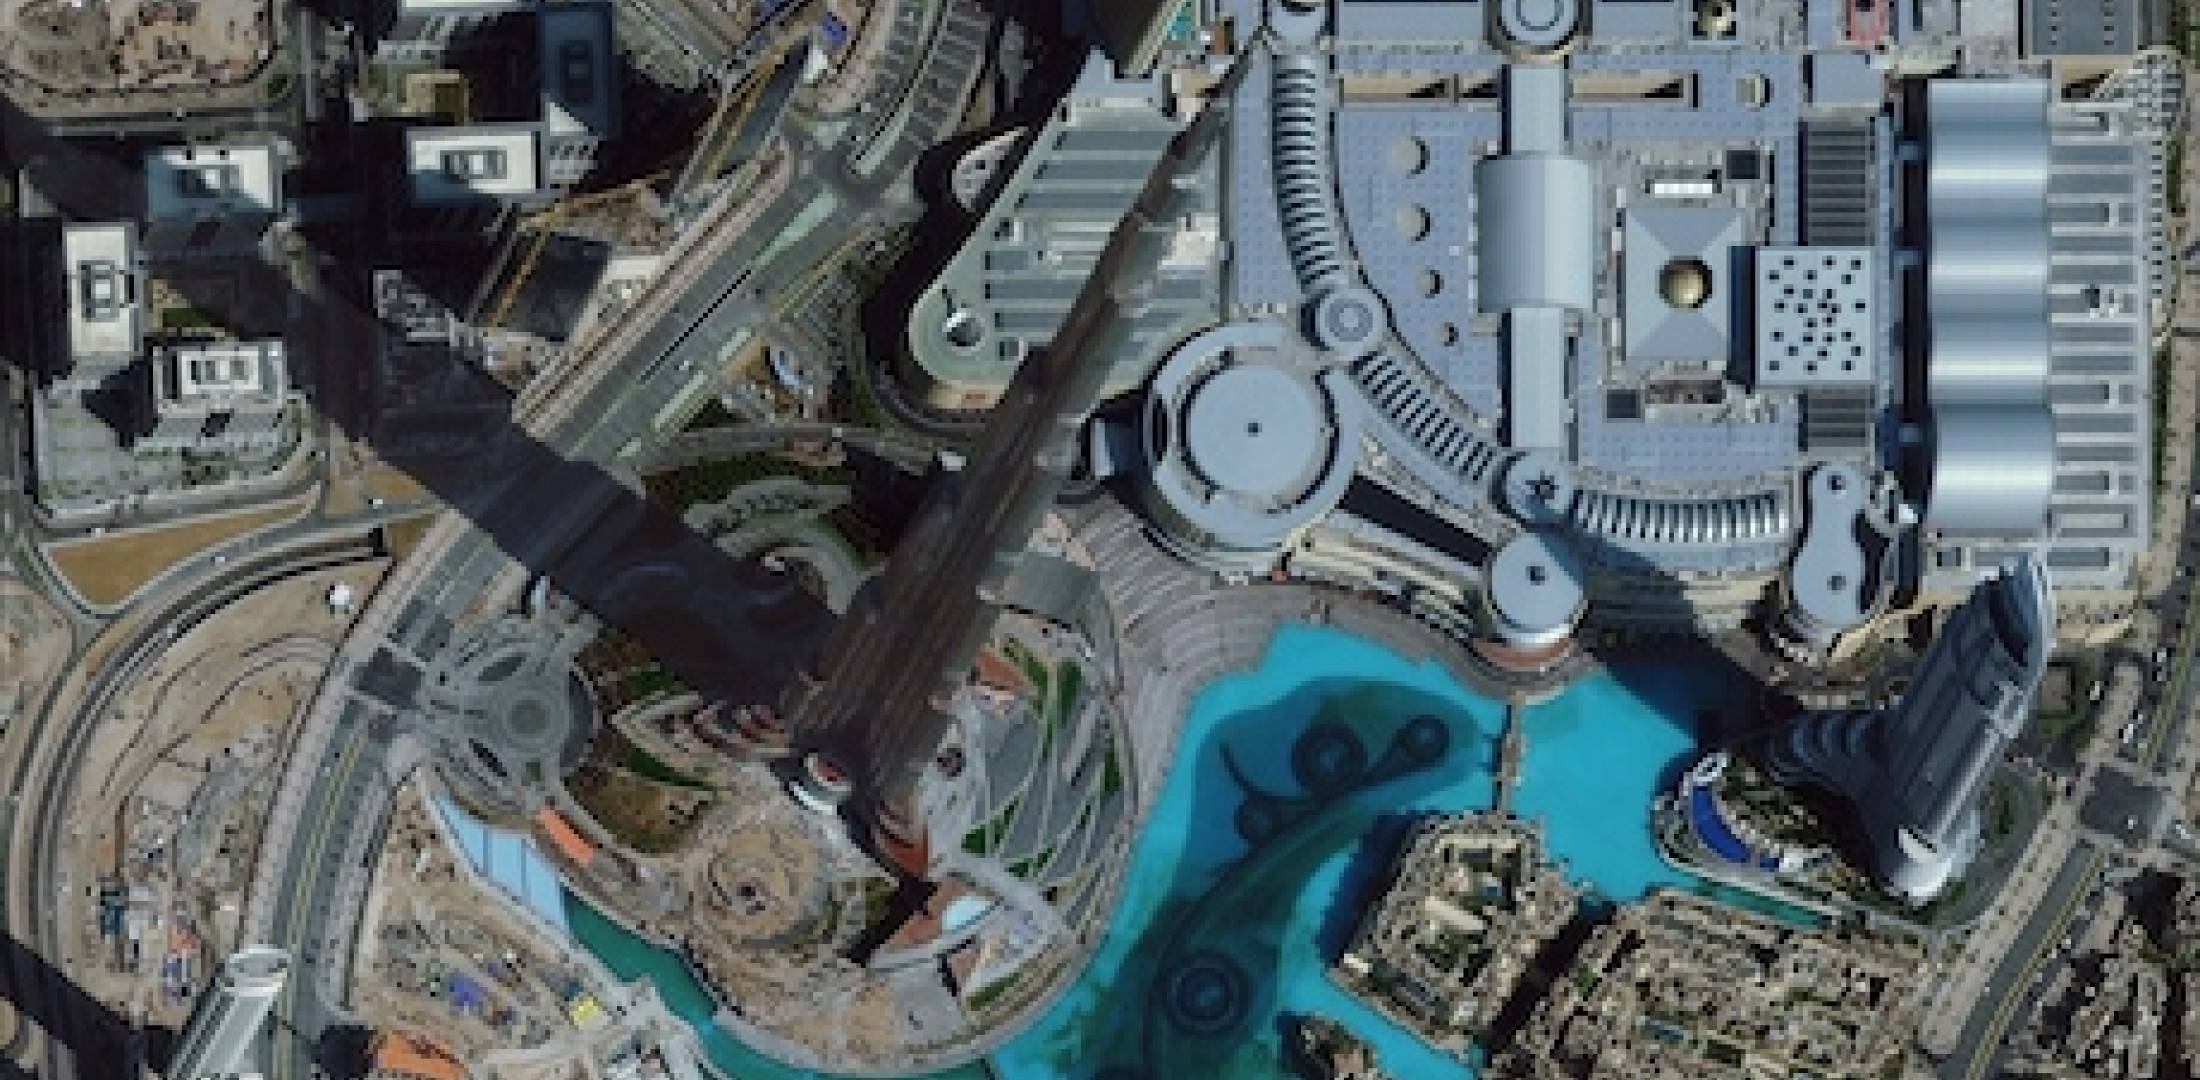 Satellite image of the Burj Khalifa in Dubai.